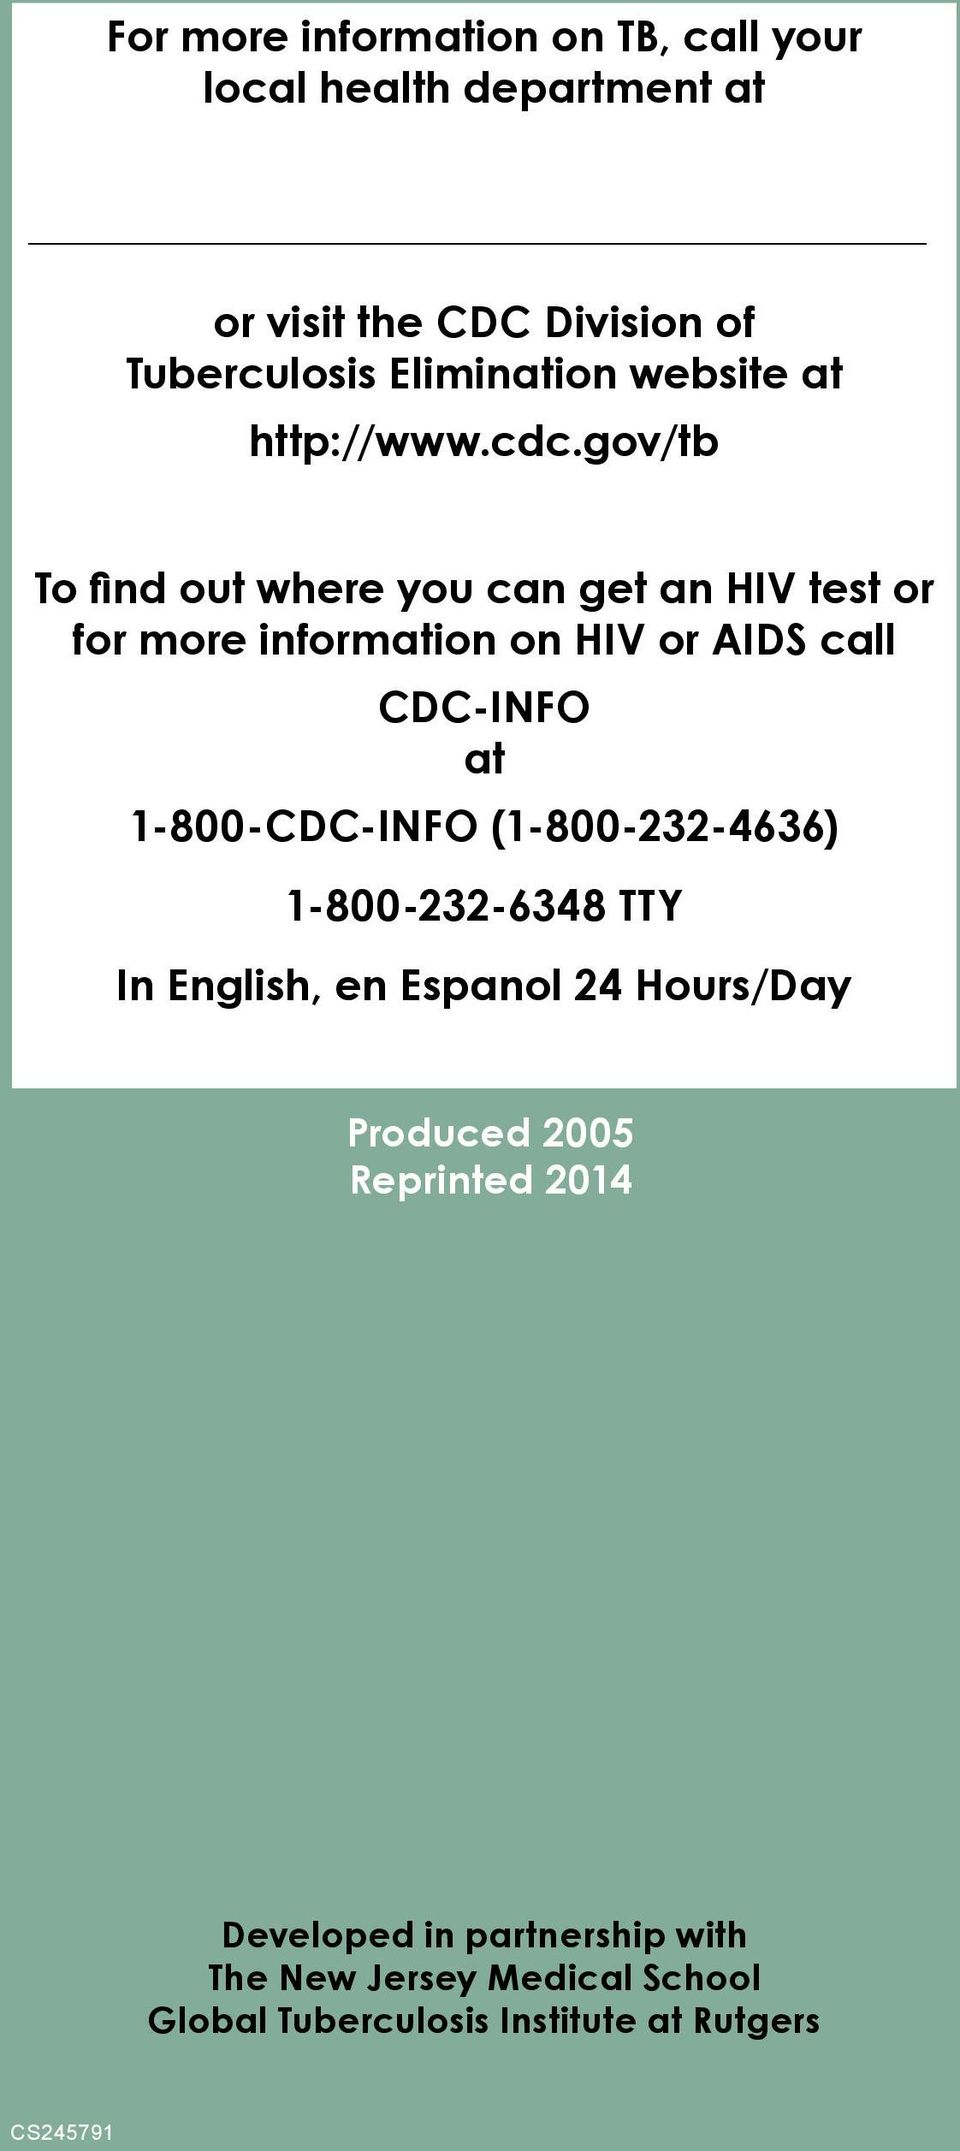 gov/tb To find out where you can get an HIV test or for more information on HIV or AIDS call CDC-INFO at